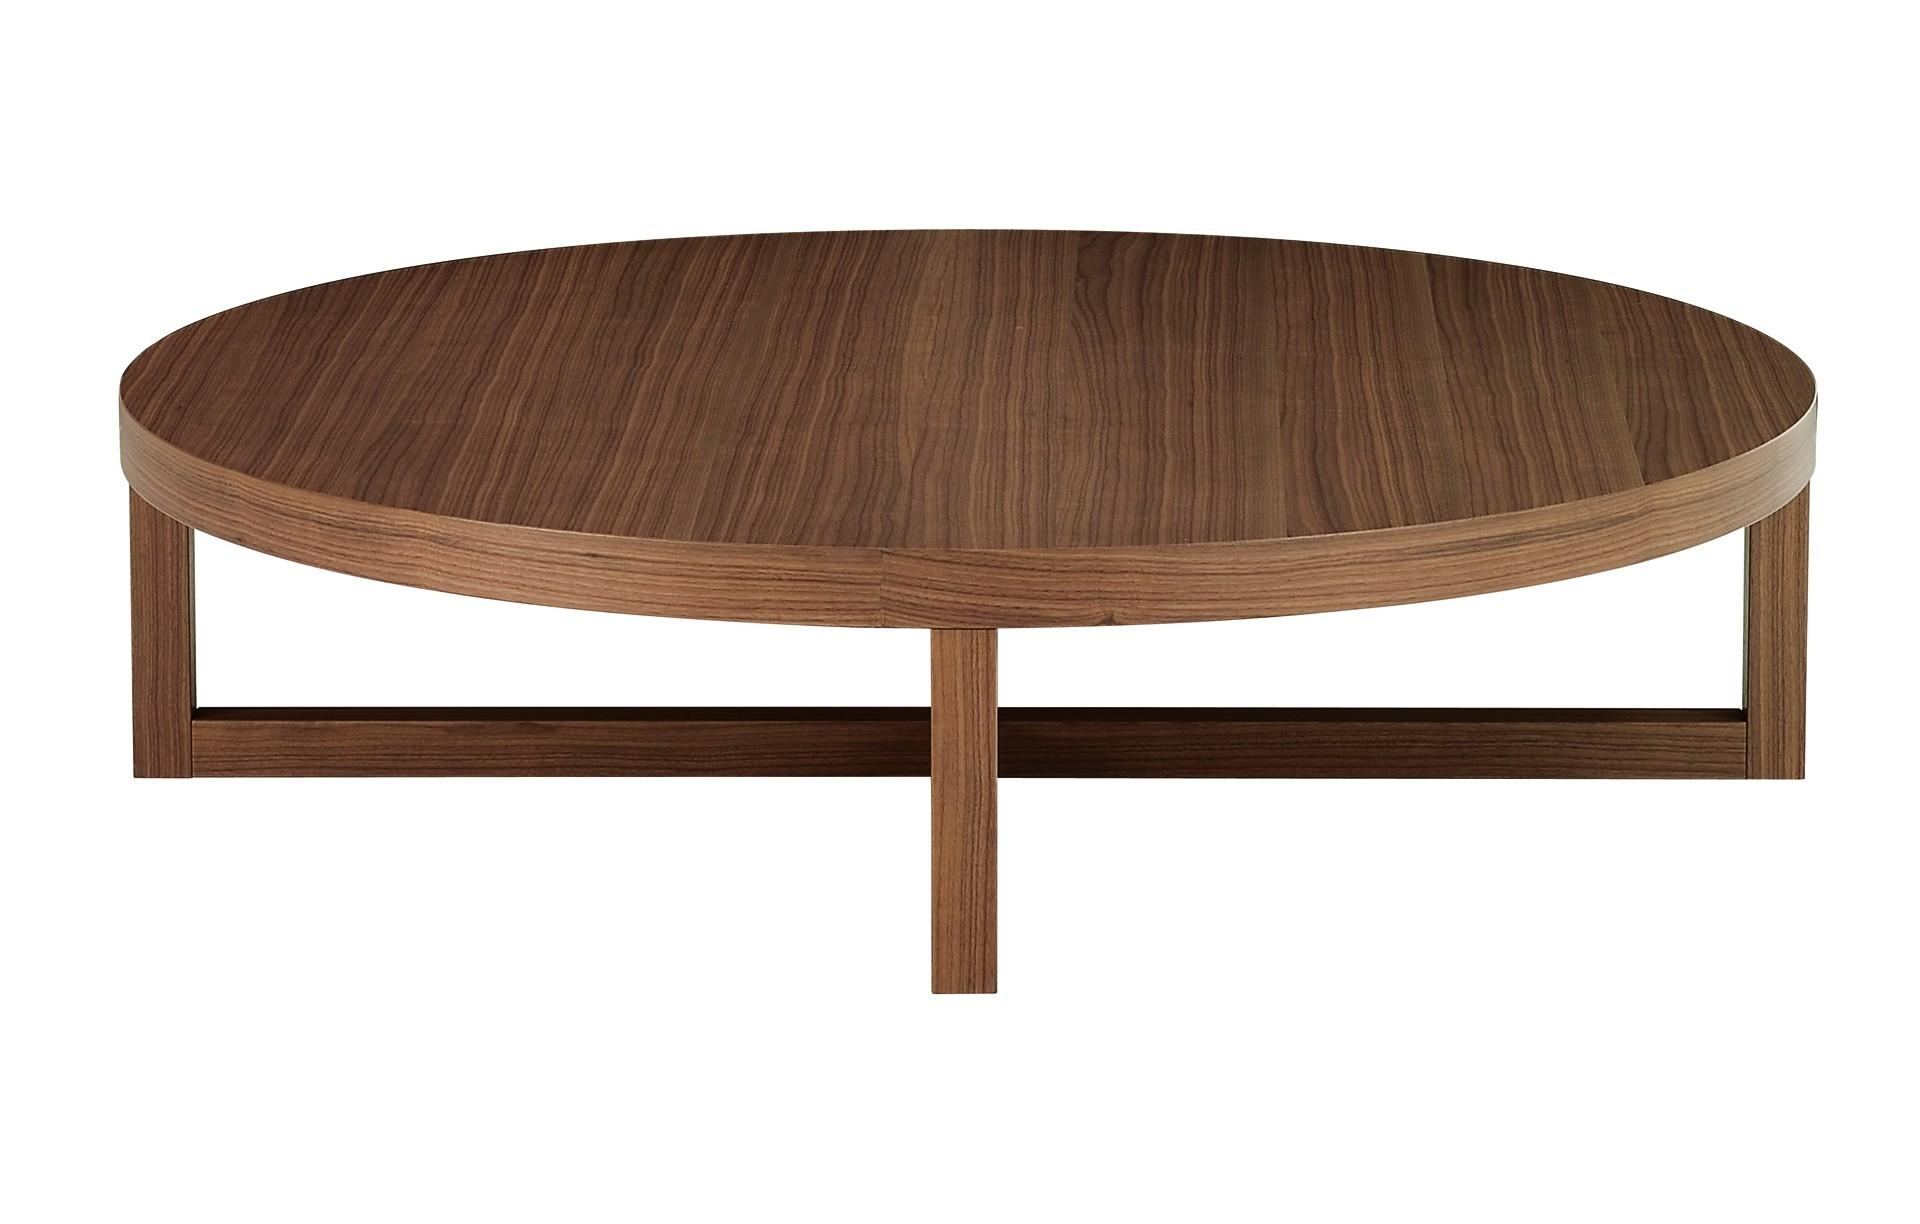 Low Round Coffee Table – Low Round Wood Coffee Table, Low Round With Regard To Low Sofa Tables (Image 9 of 20)